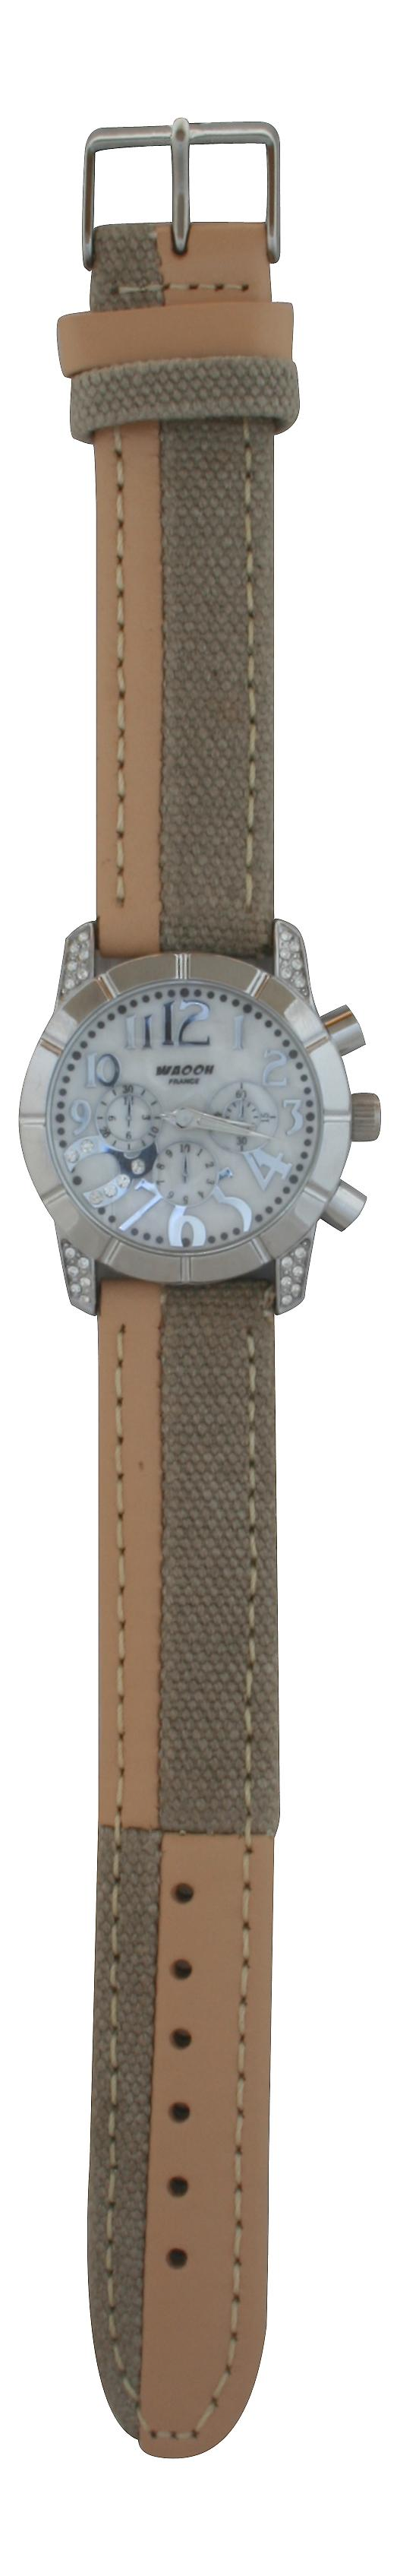 Waooh - Waooh 03873A Beige Leather Strap